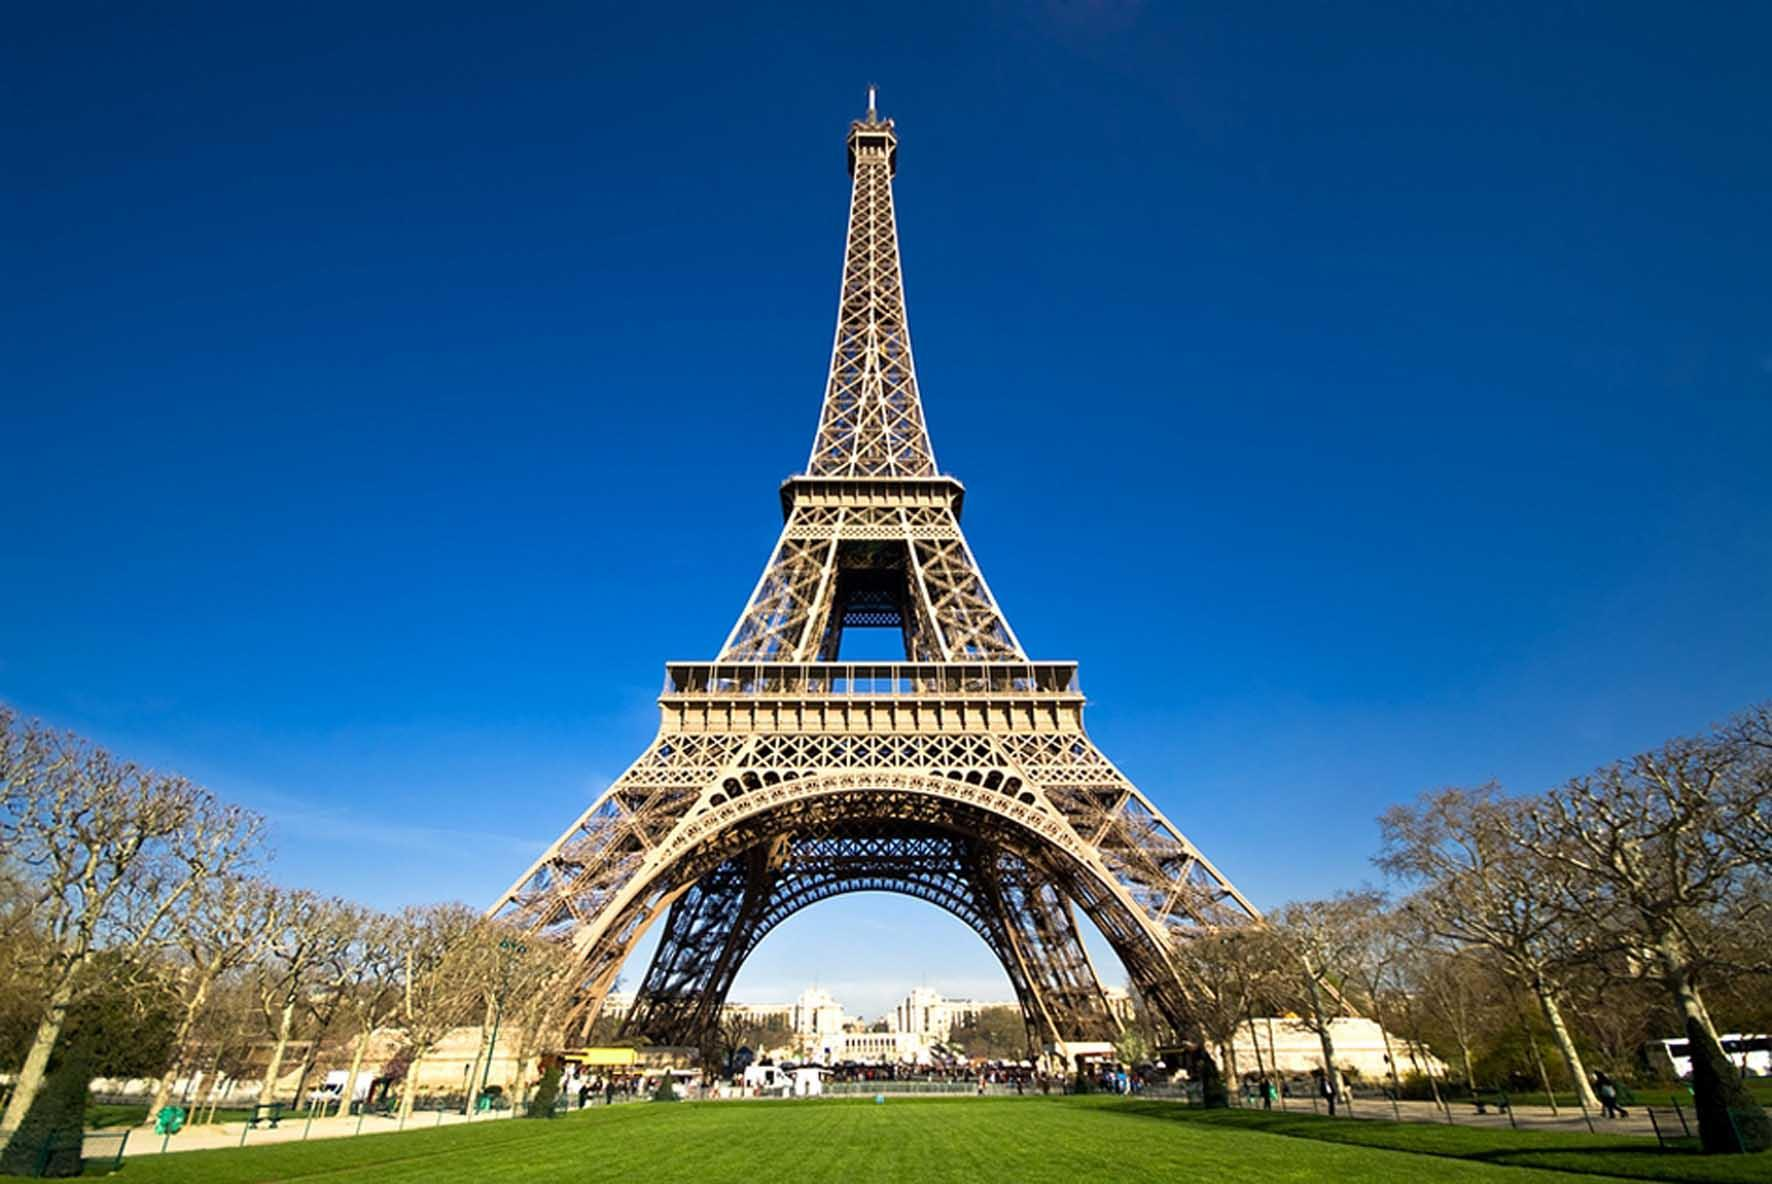 50% Off Air France Promo Awards Tickets